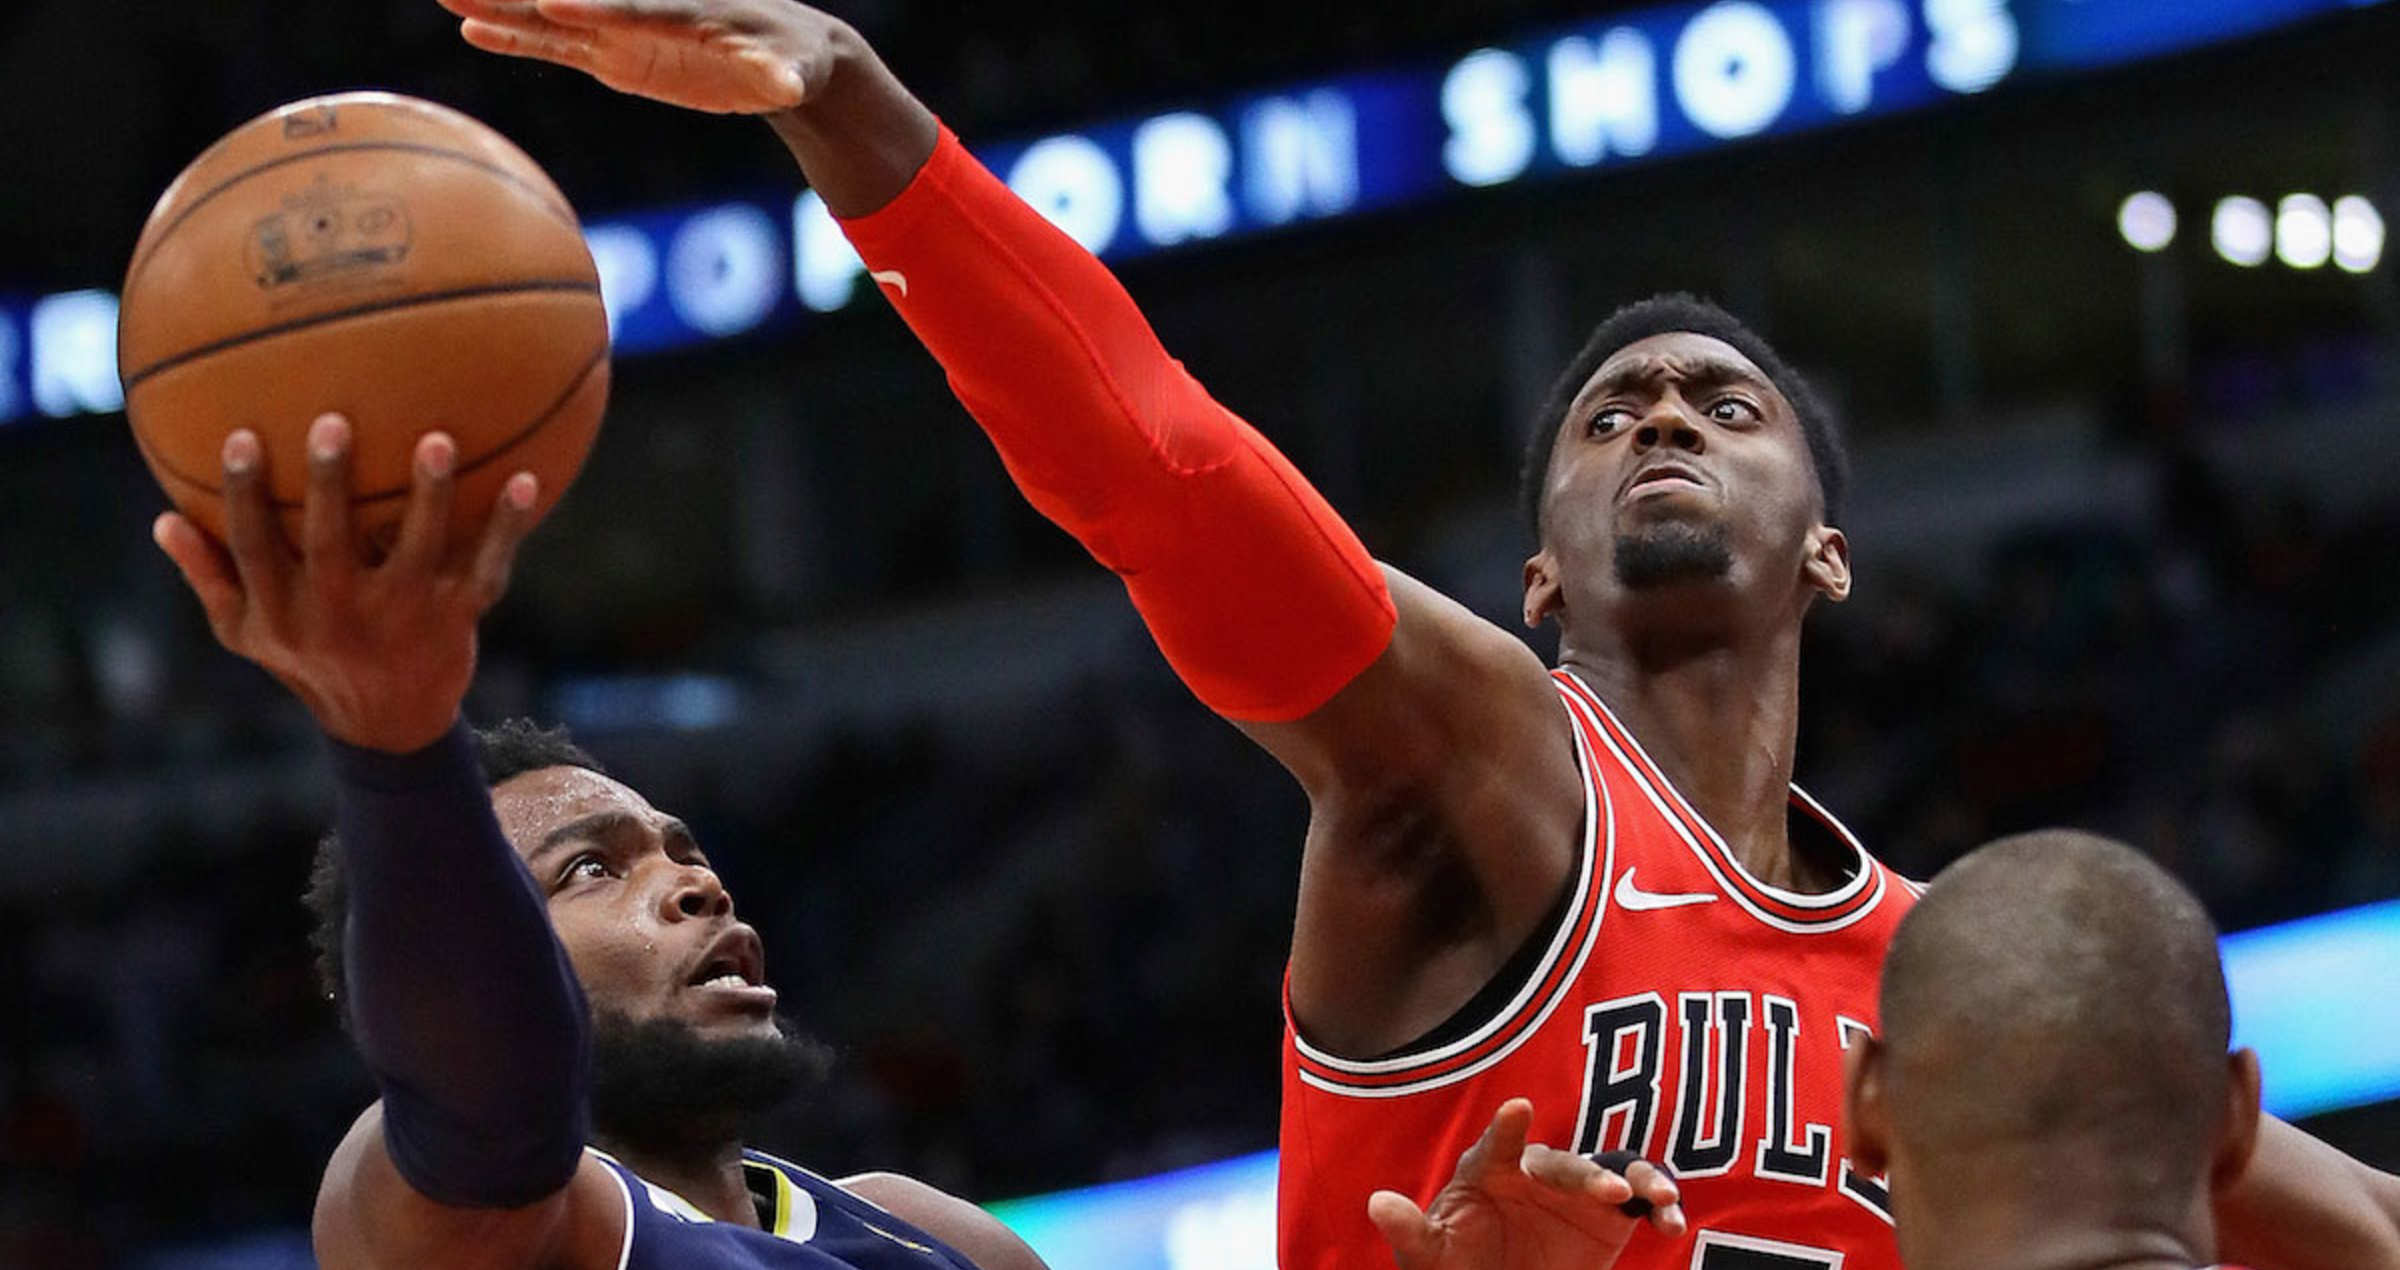 Paul Millsap #4 of the Denver Nuggets goes up against Bobby Portis #5 and Cristiano Felicio #6 of the Chicago Bulls at the United Center on March 21, 2018 in Chicago, Illinois.